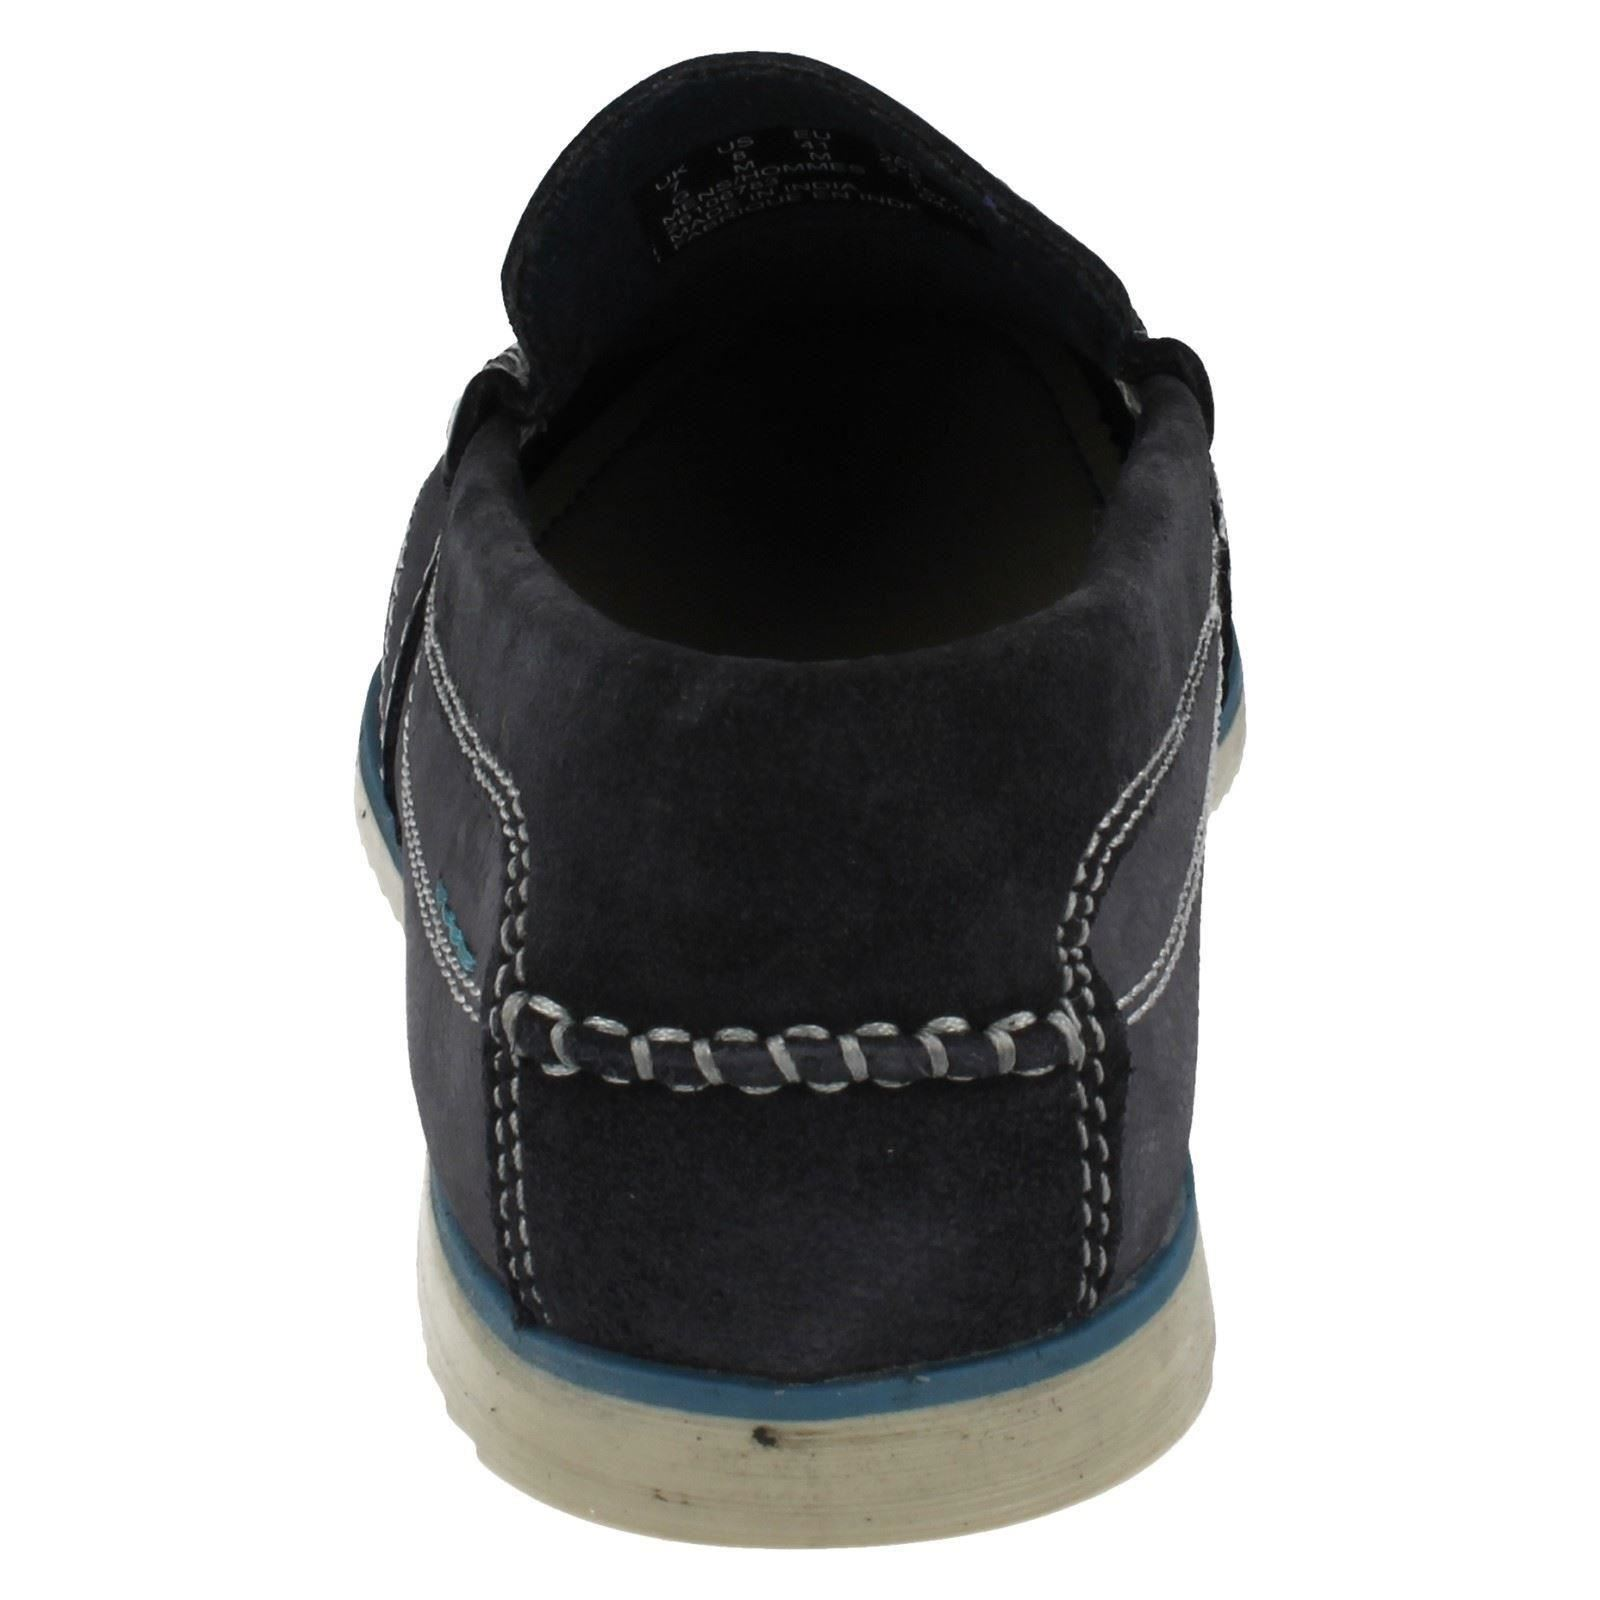 On Uomo Clarks Casual Slip On  Schuhes 'Kendrick Drive' ca2dfe